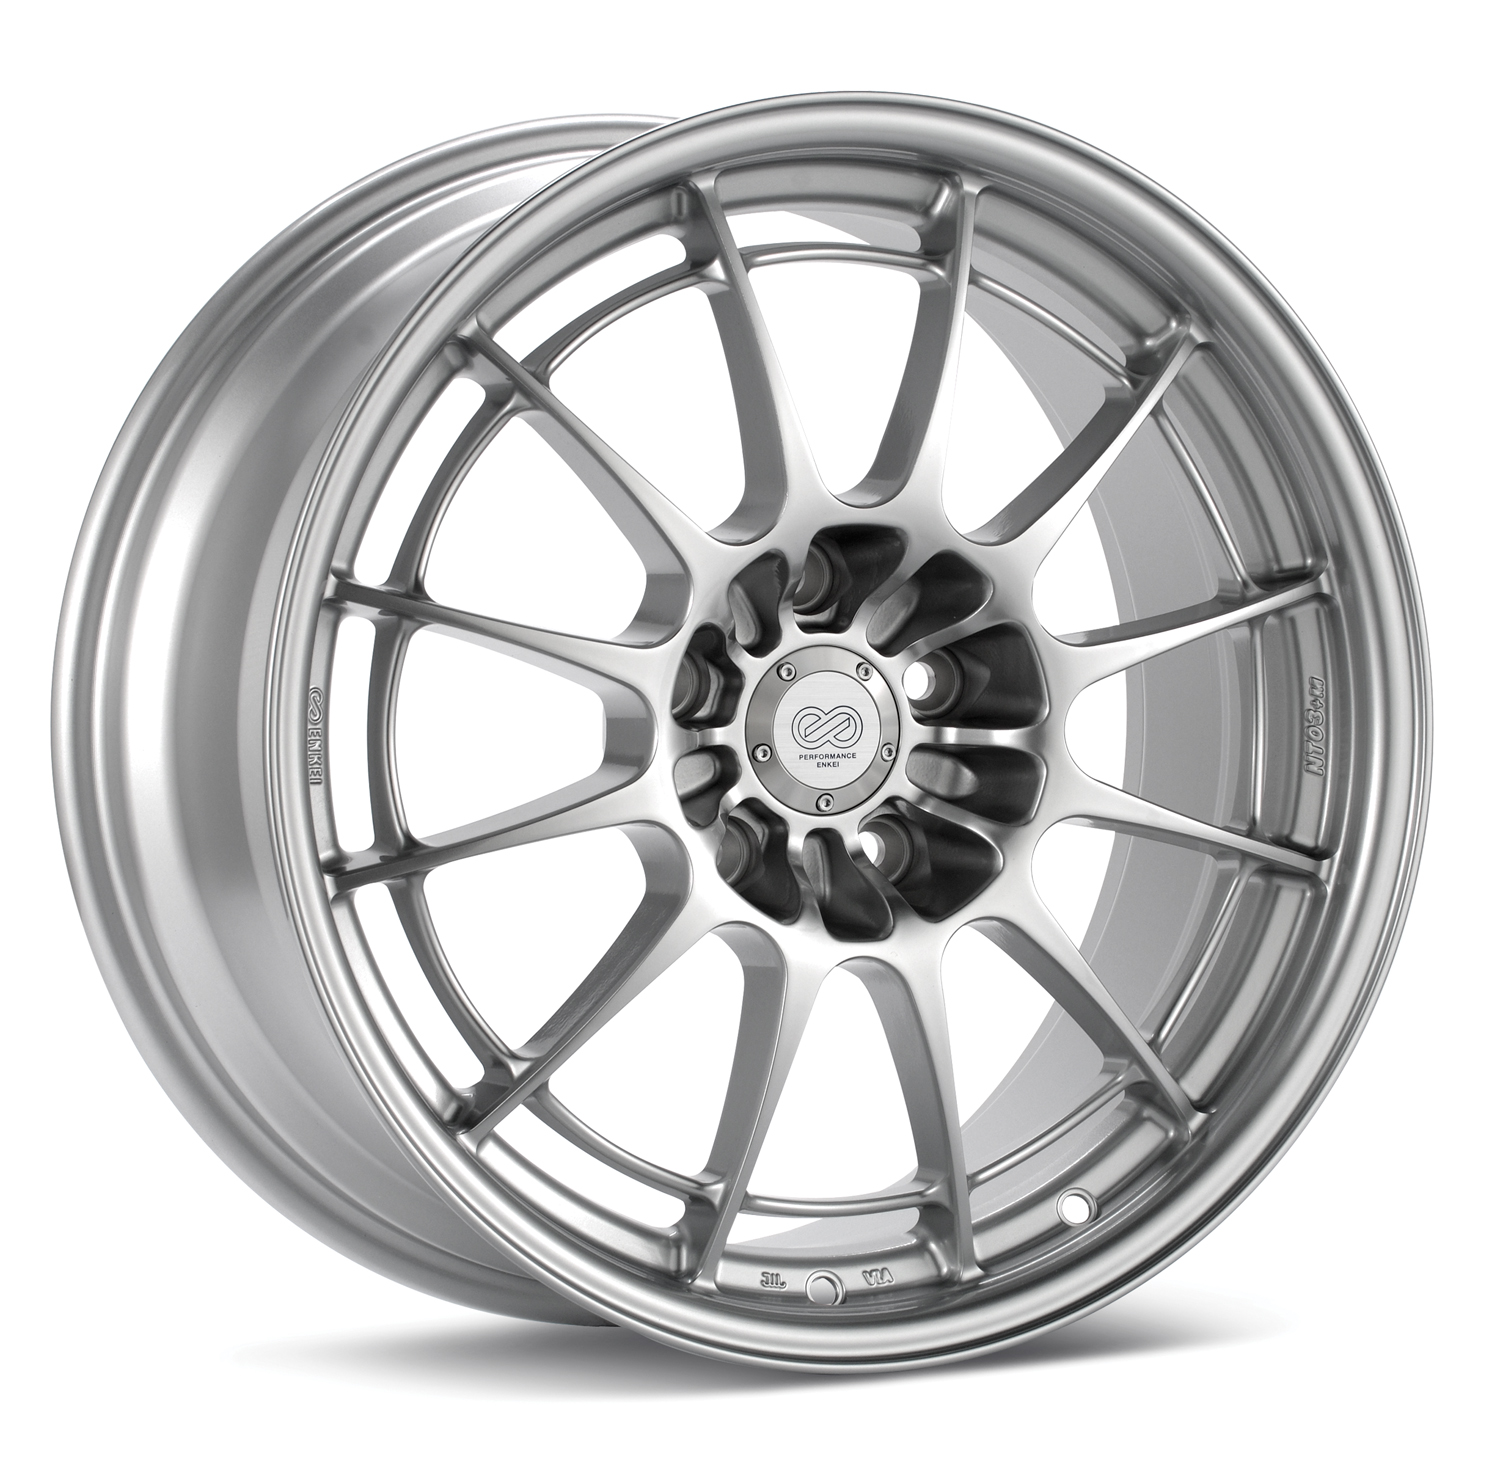 Enkei NT03+M Wheel, Silver Paint, 18x10.5, +30mm, 5x114.3, 72.6mm Bore - SET OF 4